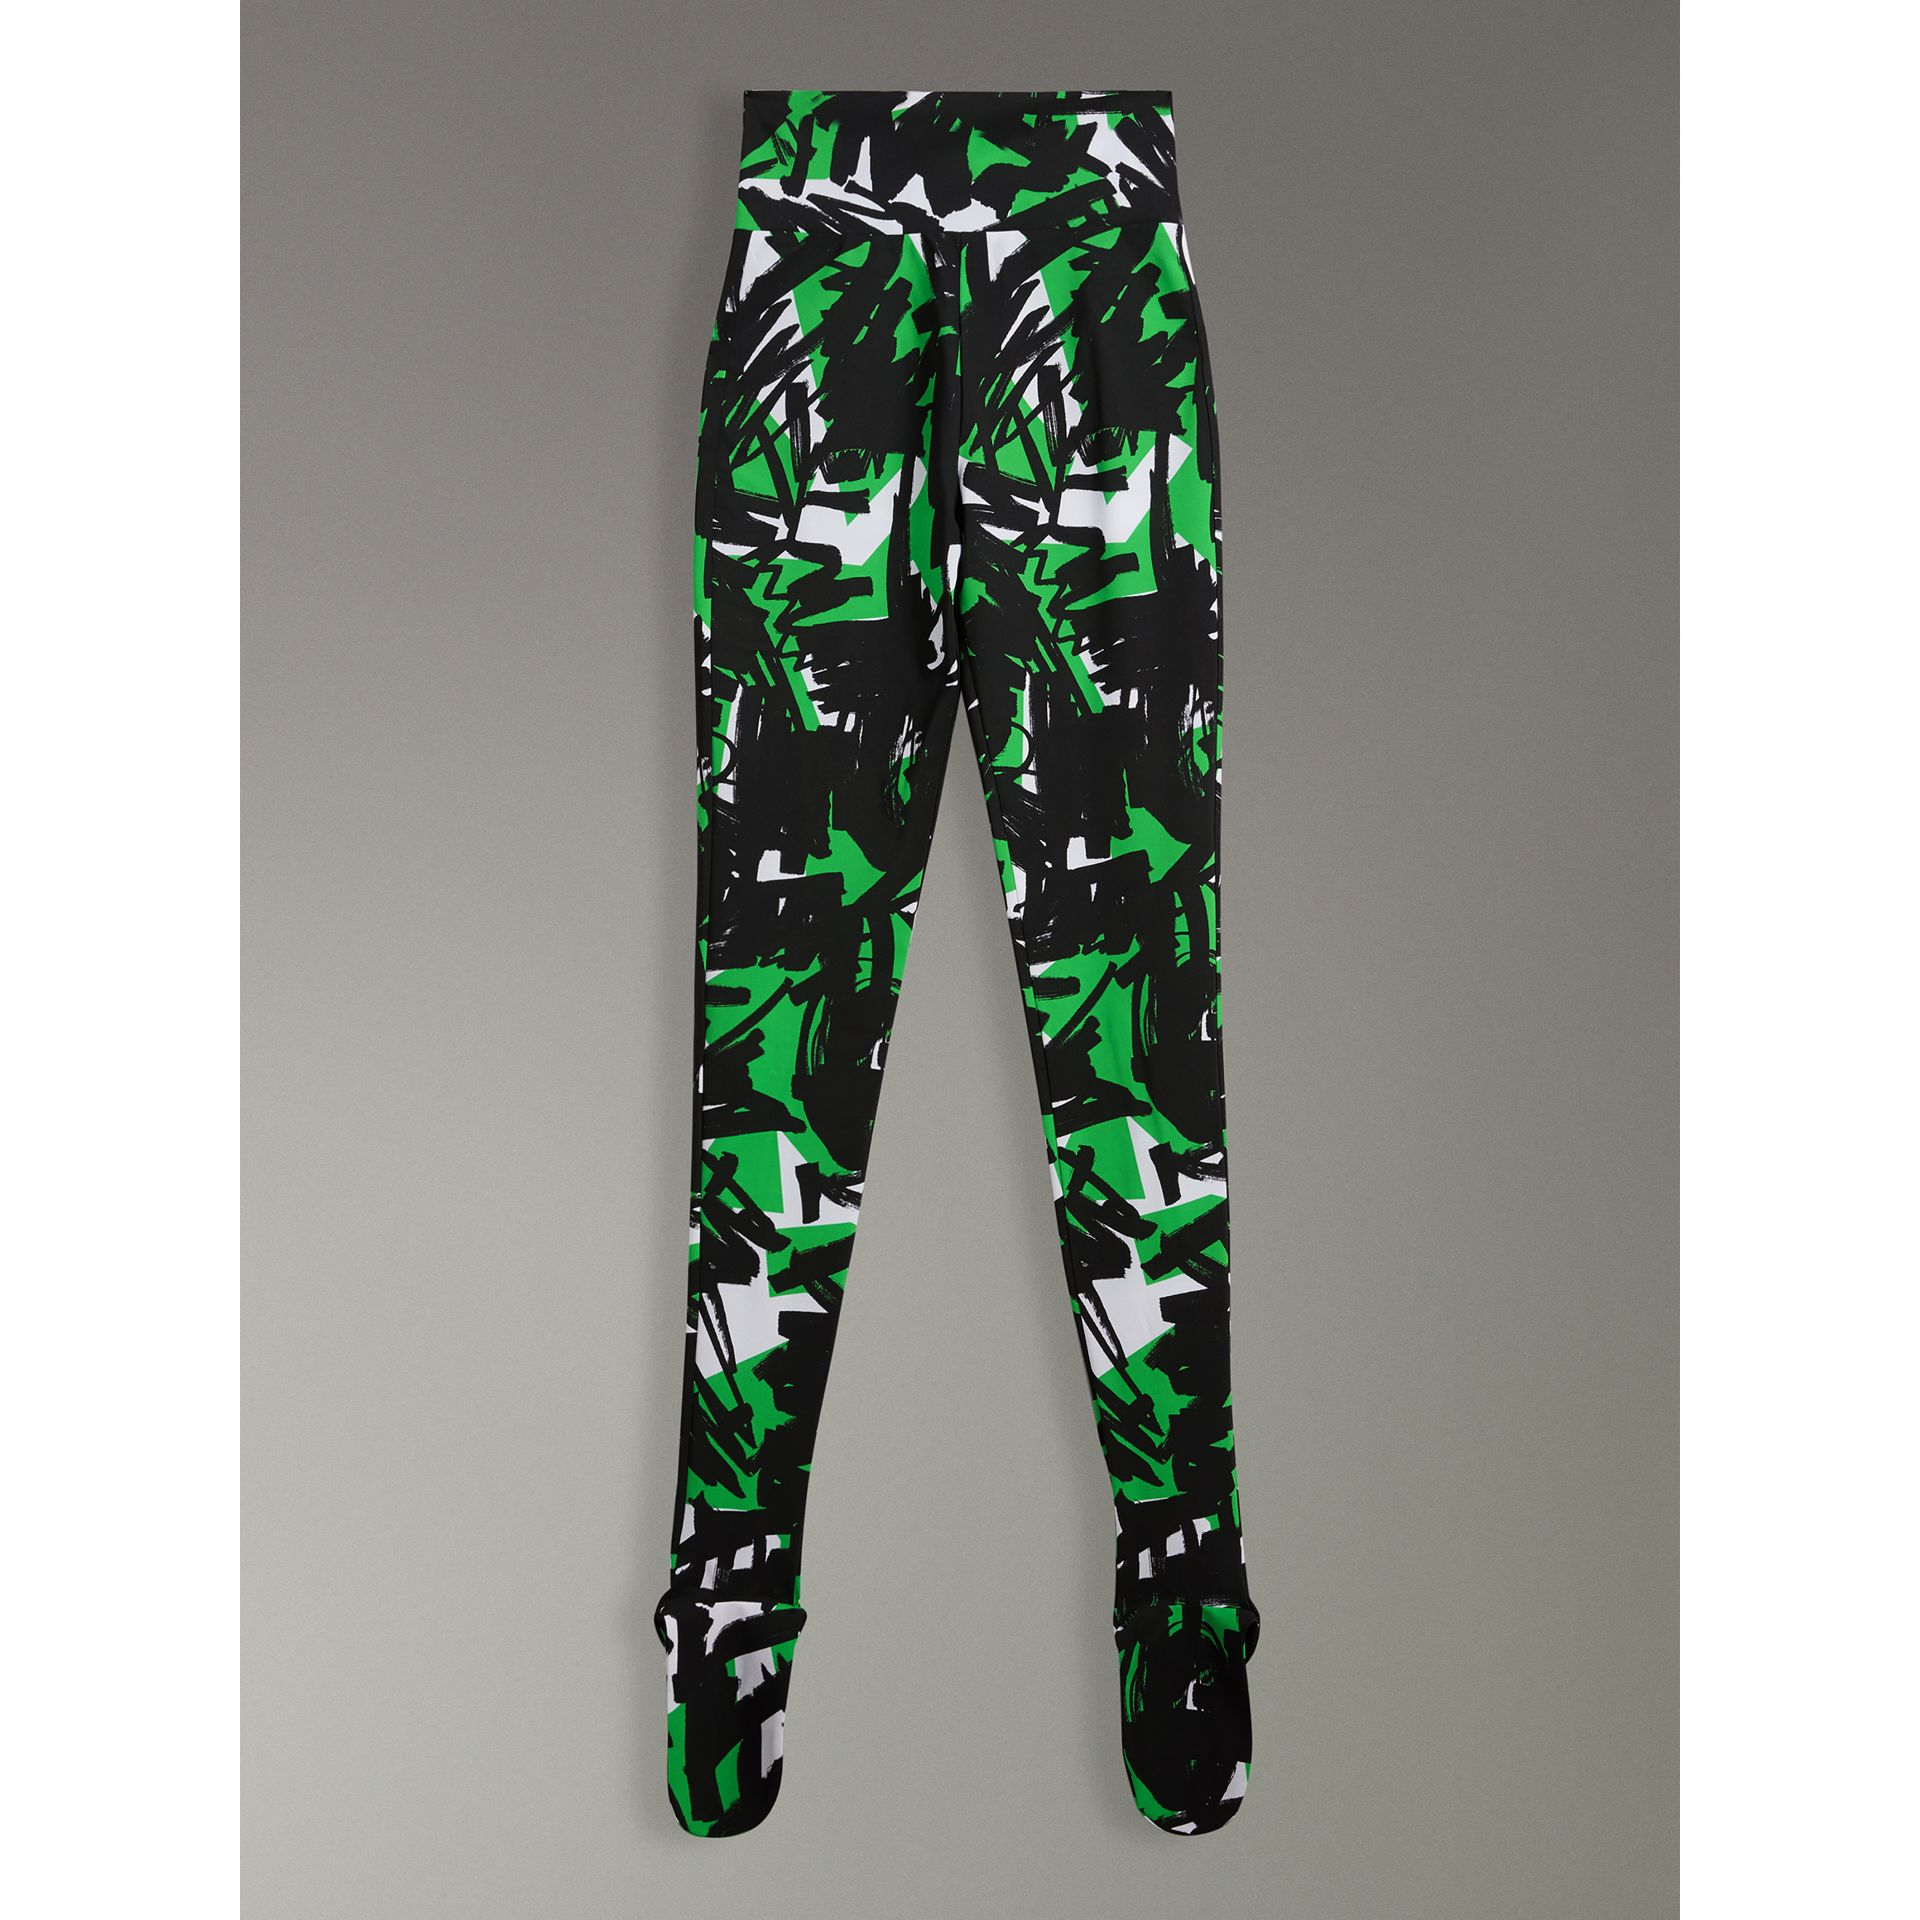 Graffiti Print Leggings in Neon Green - Women | Burberry - gallery image 3